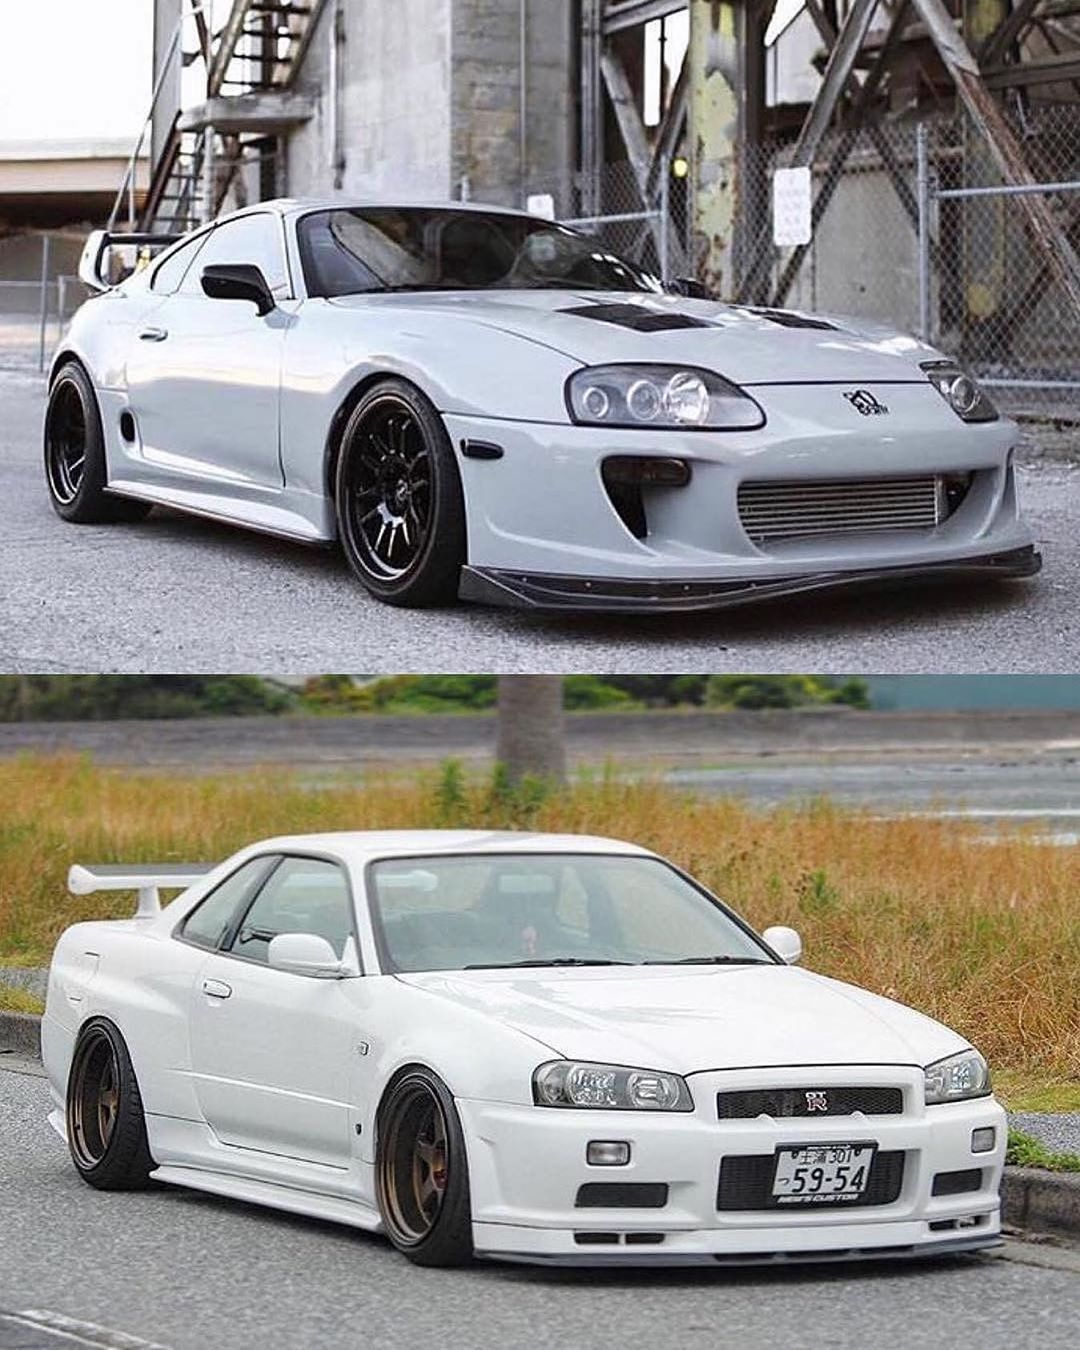 Amazing Cars You Need to see (With images) Jdm, Sport